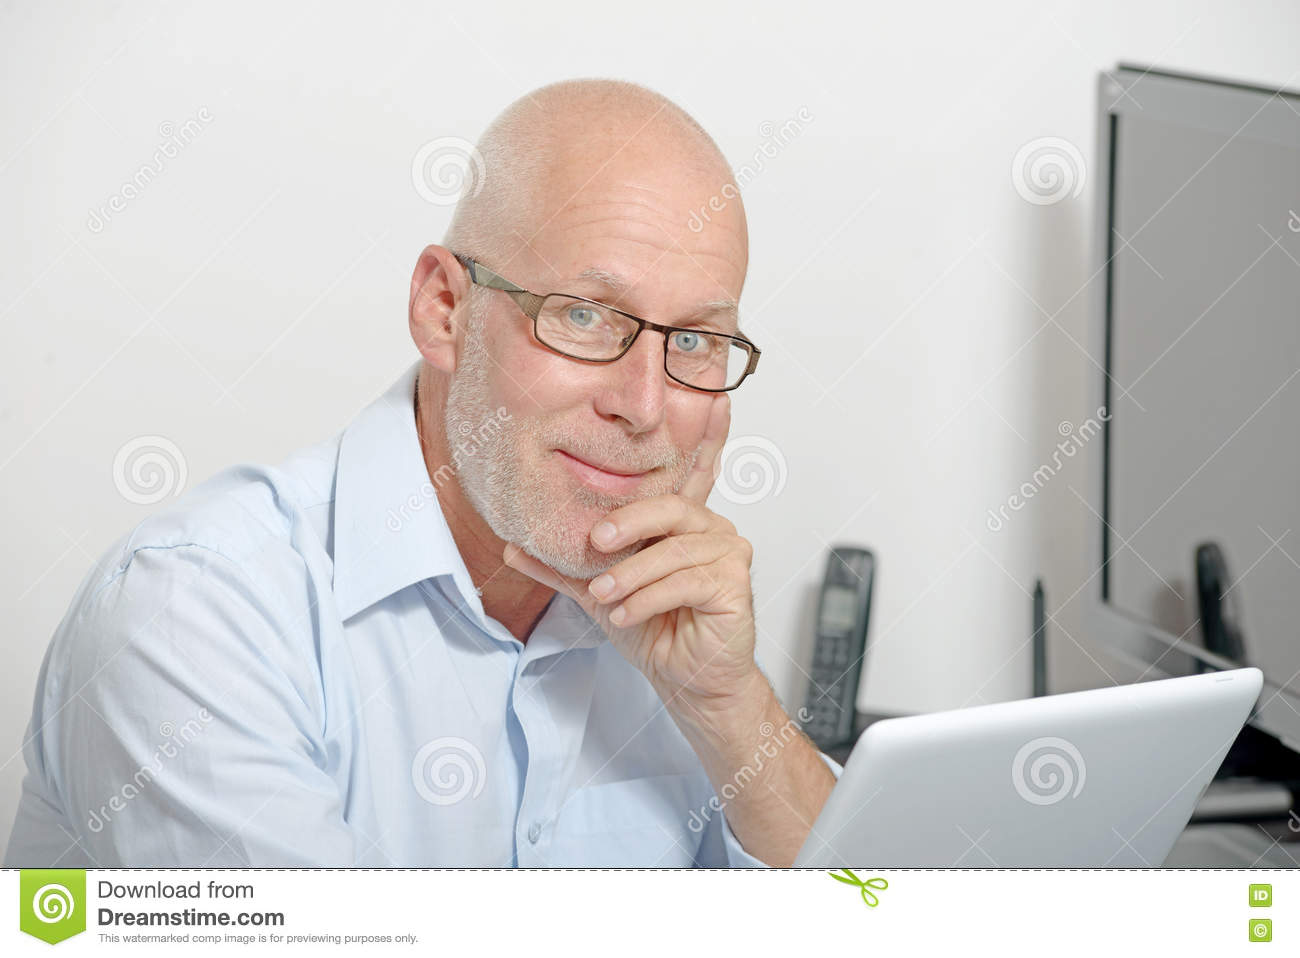 Portrait of a middle-aged man with a digital tablet